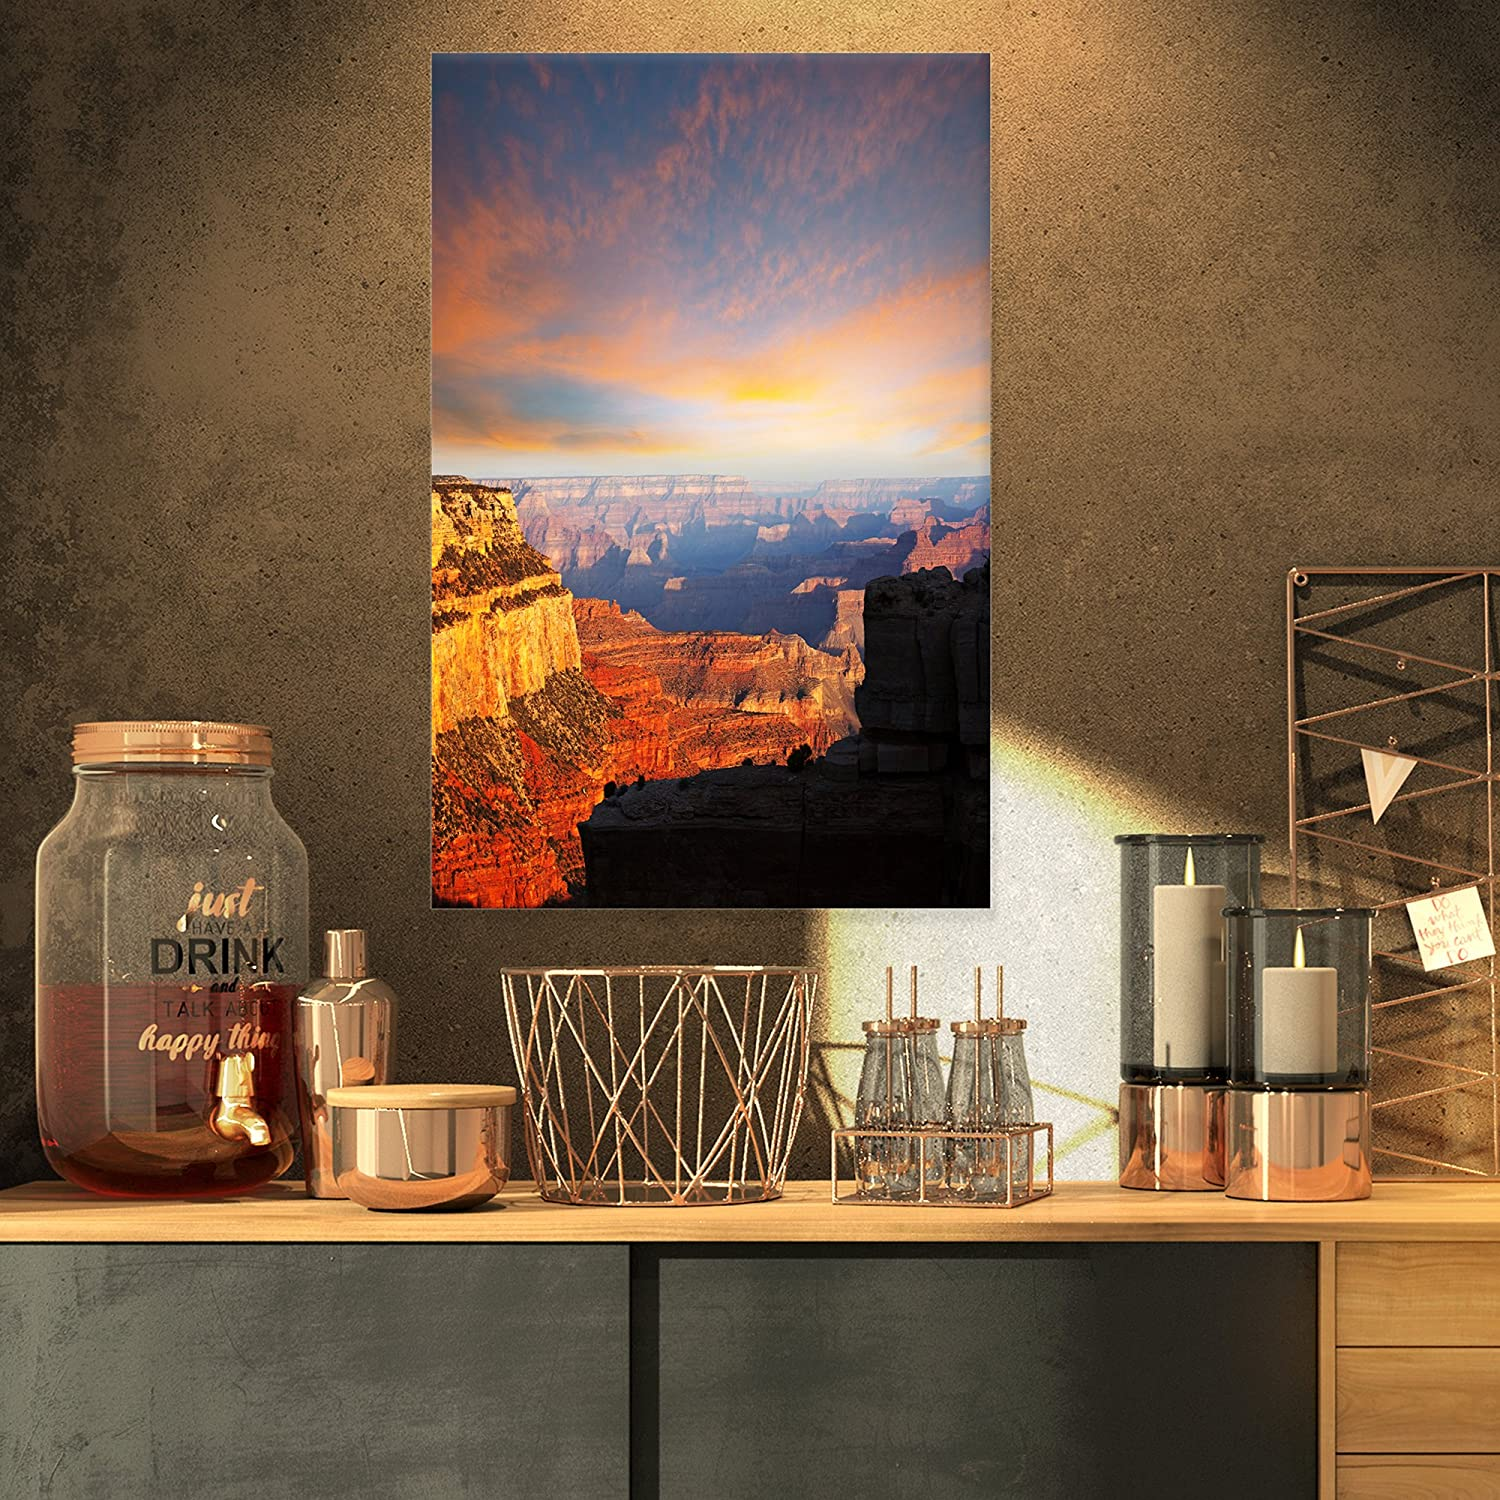 Design Art Oklahoma City Mall PT12733-40-30 Max 63% OFF Colorful Flooded Field Sunsetlandsca at